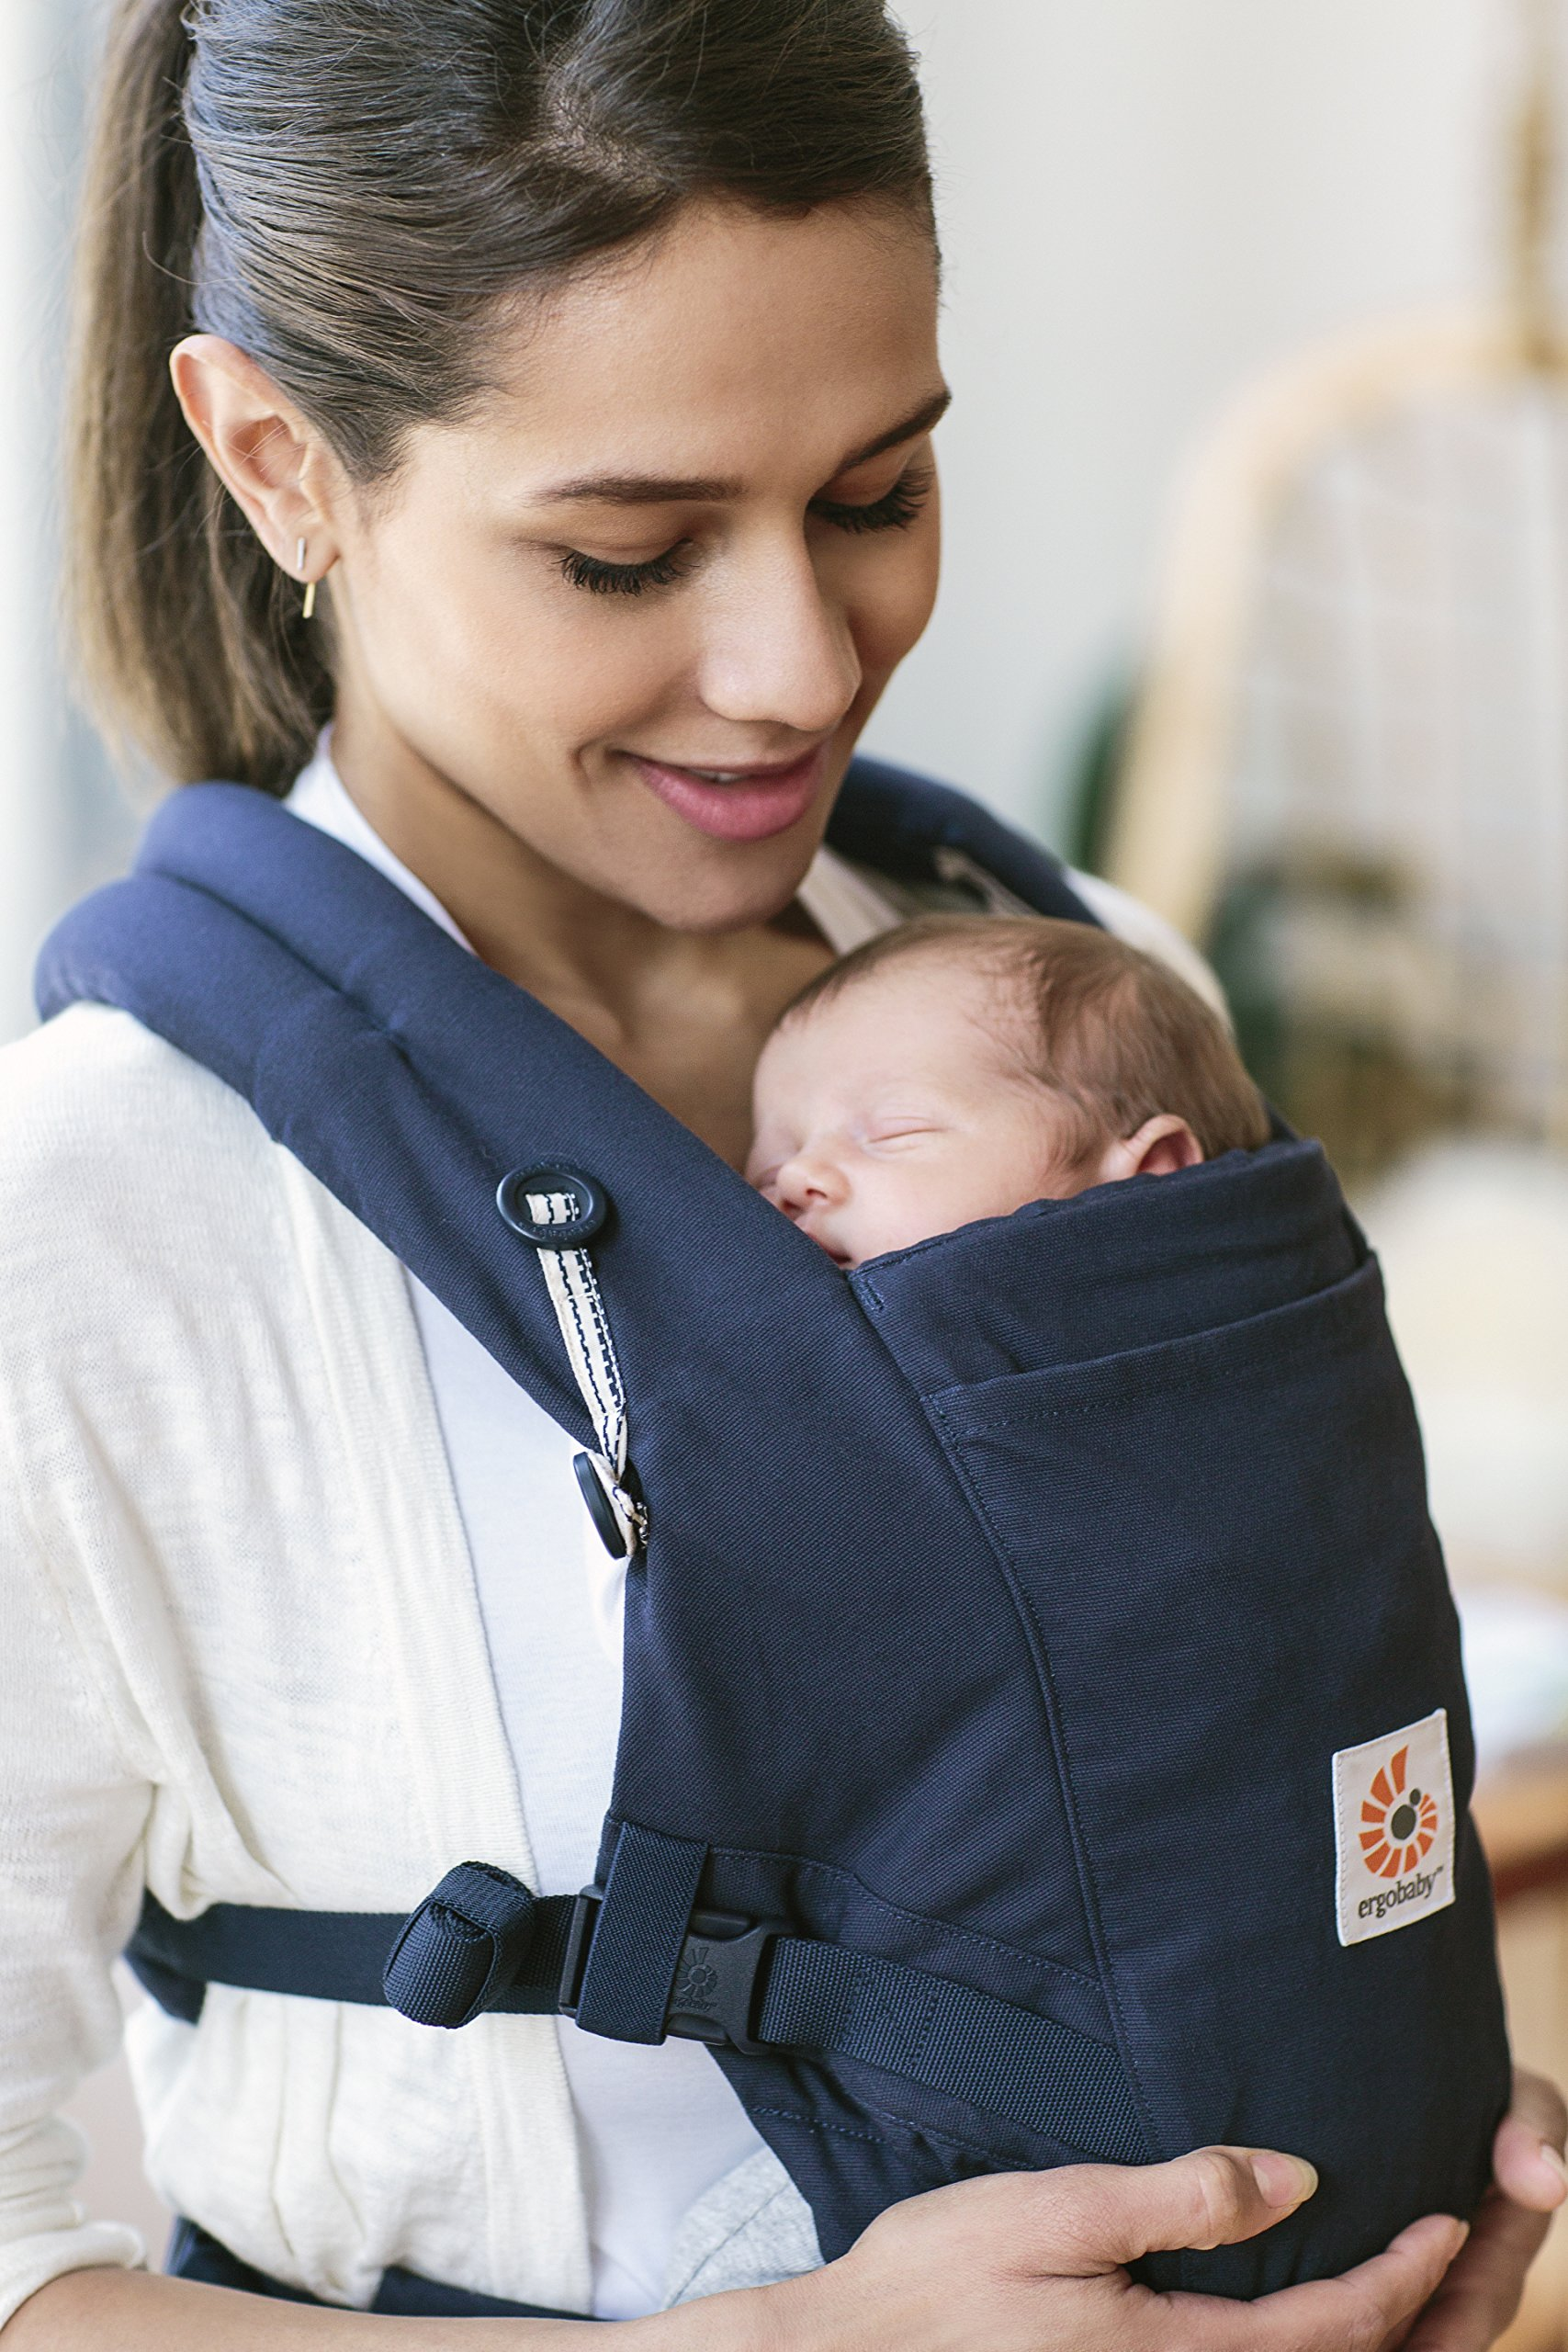 Ergobaby Baby Carrier for Newborn to Toddler, Admiral Blue Adapt 3-Position Ergonomic Child Carrier Backpack Ergobaby Carrier for newborns - The ergonomic bucket seat gradually adjusts to your growing baby, to ensure baby is seated in a natural frog-leg position (M-shape position) from newborn to toddler (3.2-20 kg / 7-45 lbs). NEW - Now with lumbar support. Long-wearing comfort for parents with even weight distribution between hips and shoulders. Lumbar support waistbelt that can be adjusted to the height of the carry position for extra, long-wearing comfort. 3 carry positions: front-inward, hip and back. The carrier has a padded, foldable head and neck support and a tuck-away baby hood for sun protection (UPF 50+) and privacy. It is possible to breastfeed in the carrier. 7